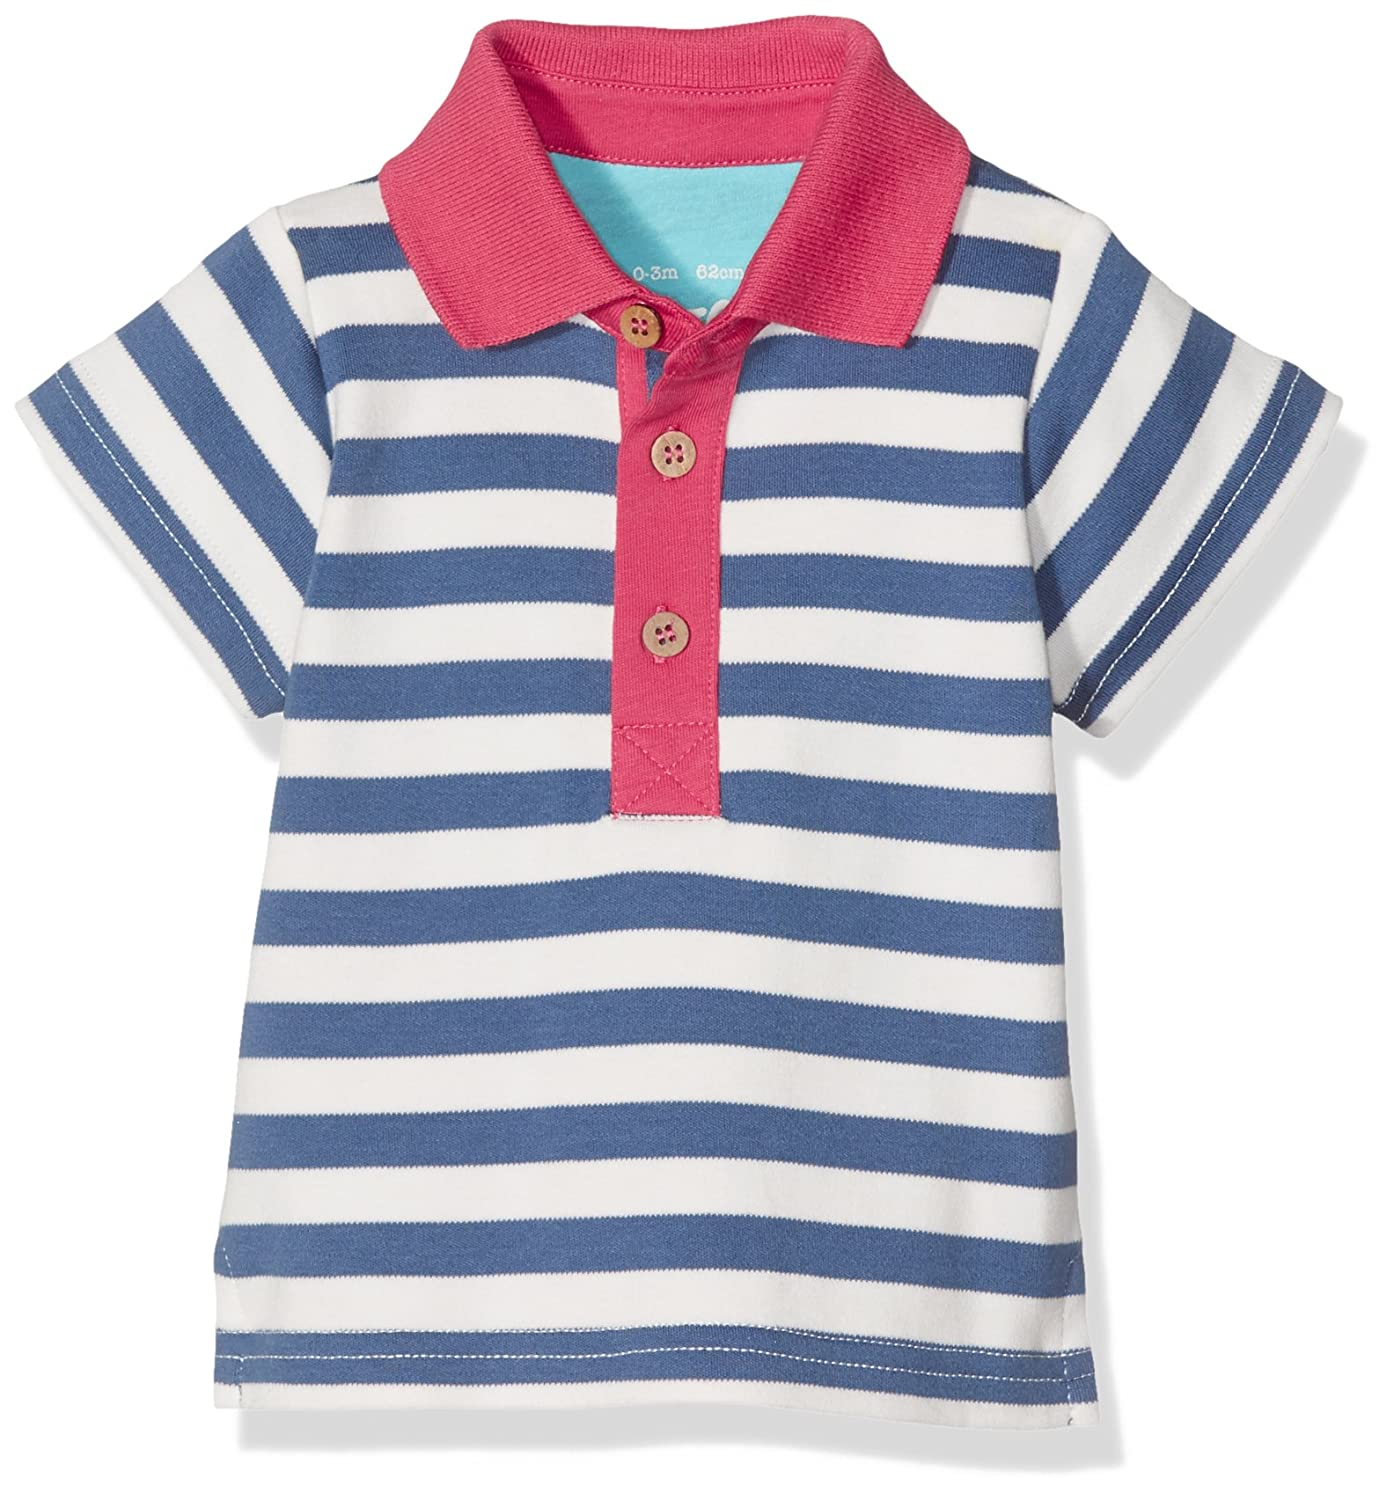 Kite Stripy Shirt, Polo Bimbo BB872